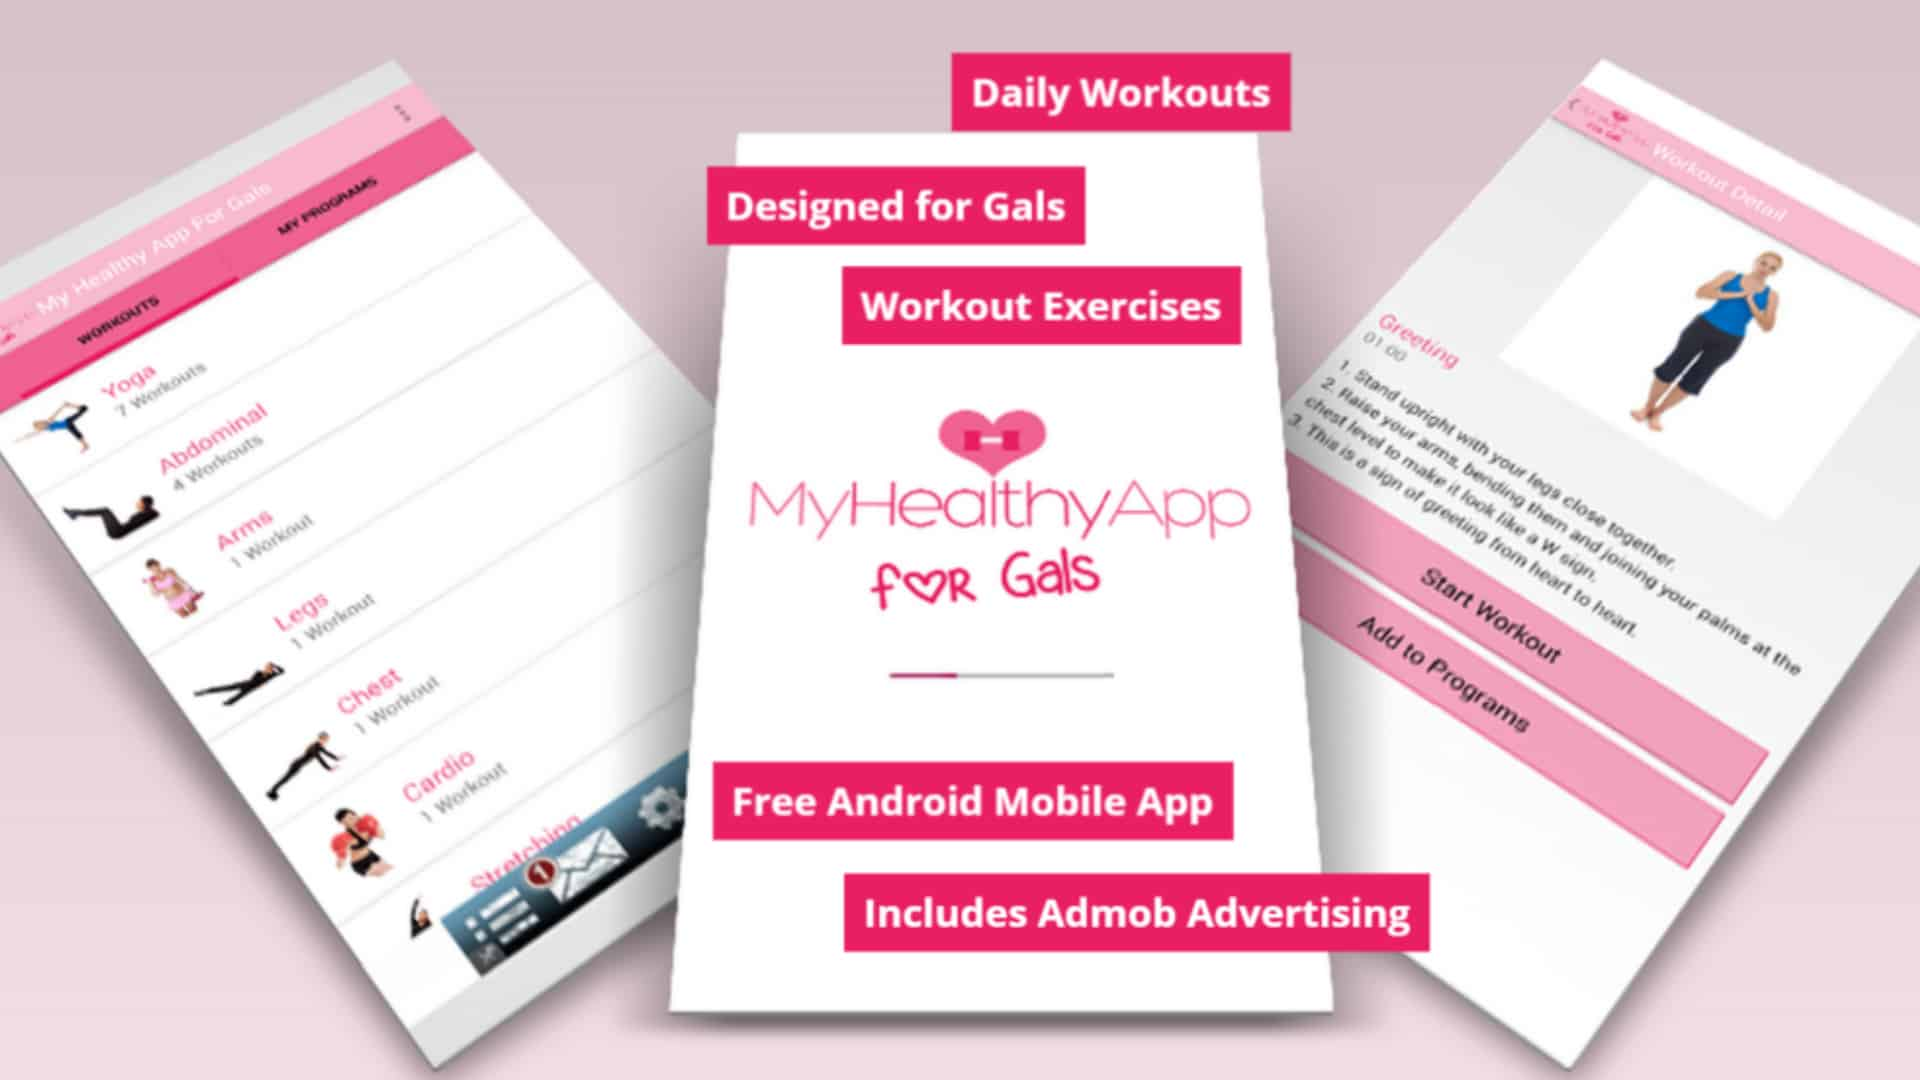 Mobile Application – My Healthy App For Gals